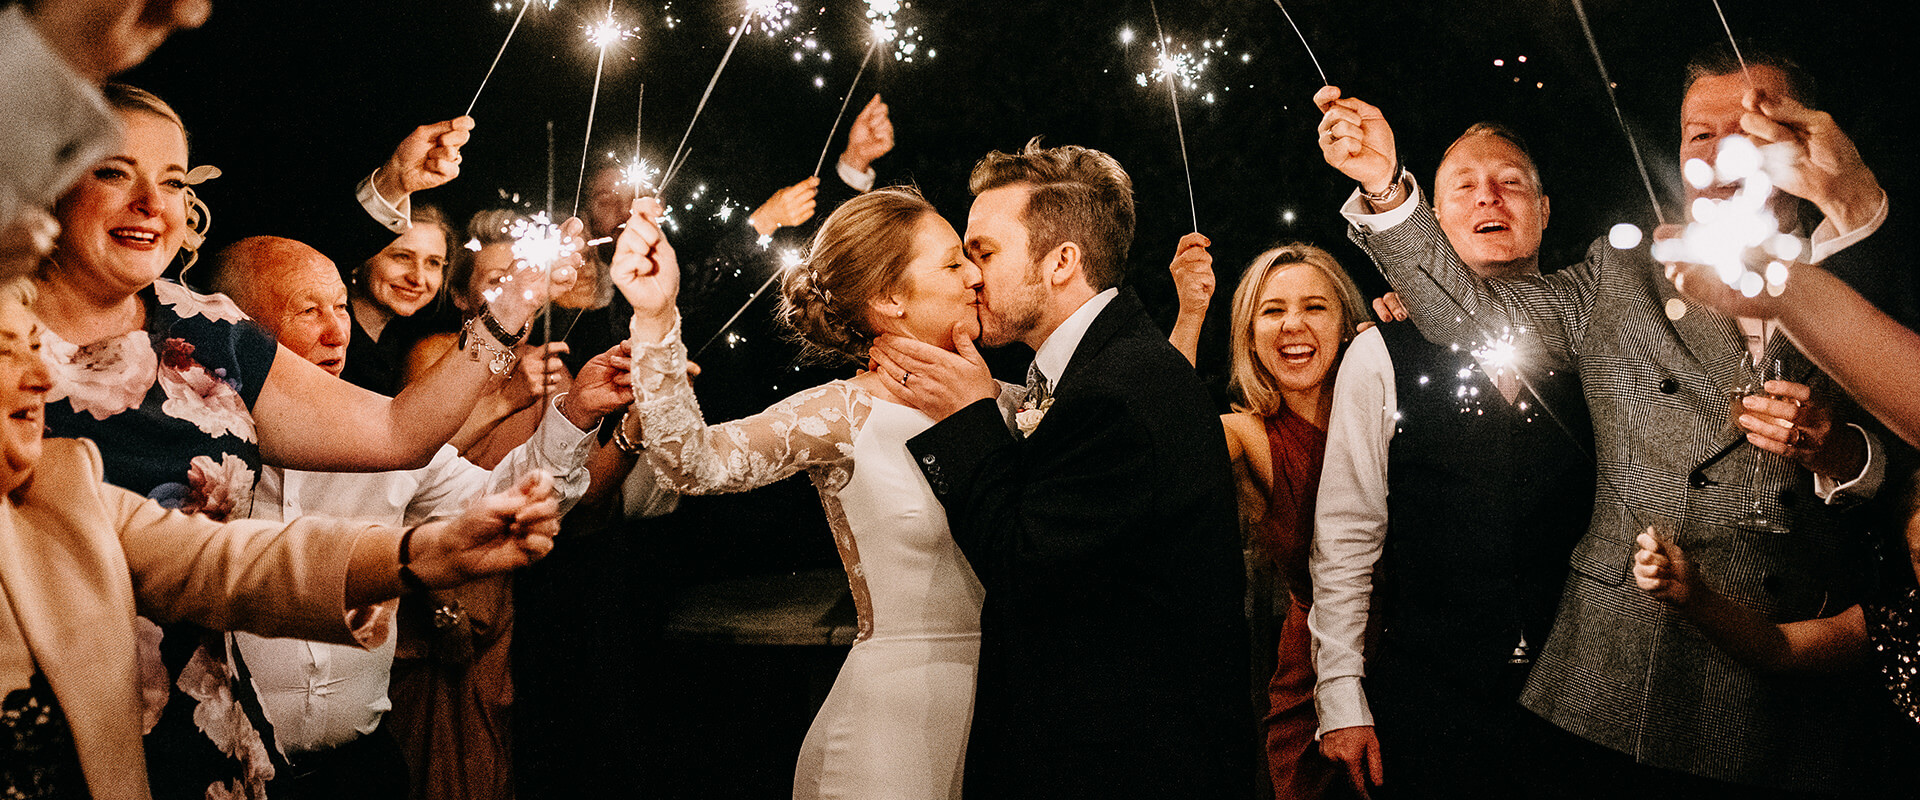 Lancashire wedding with sparklers